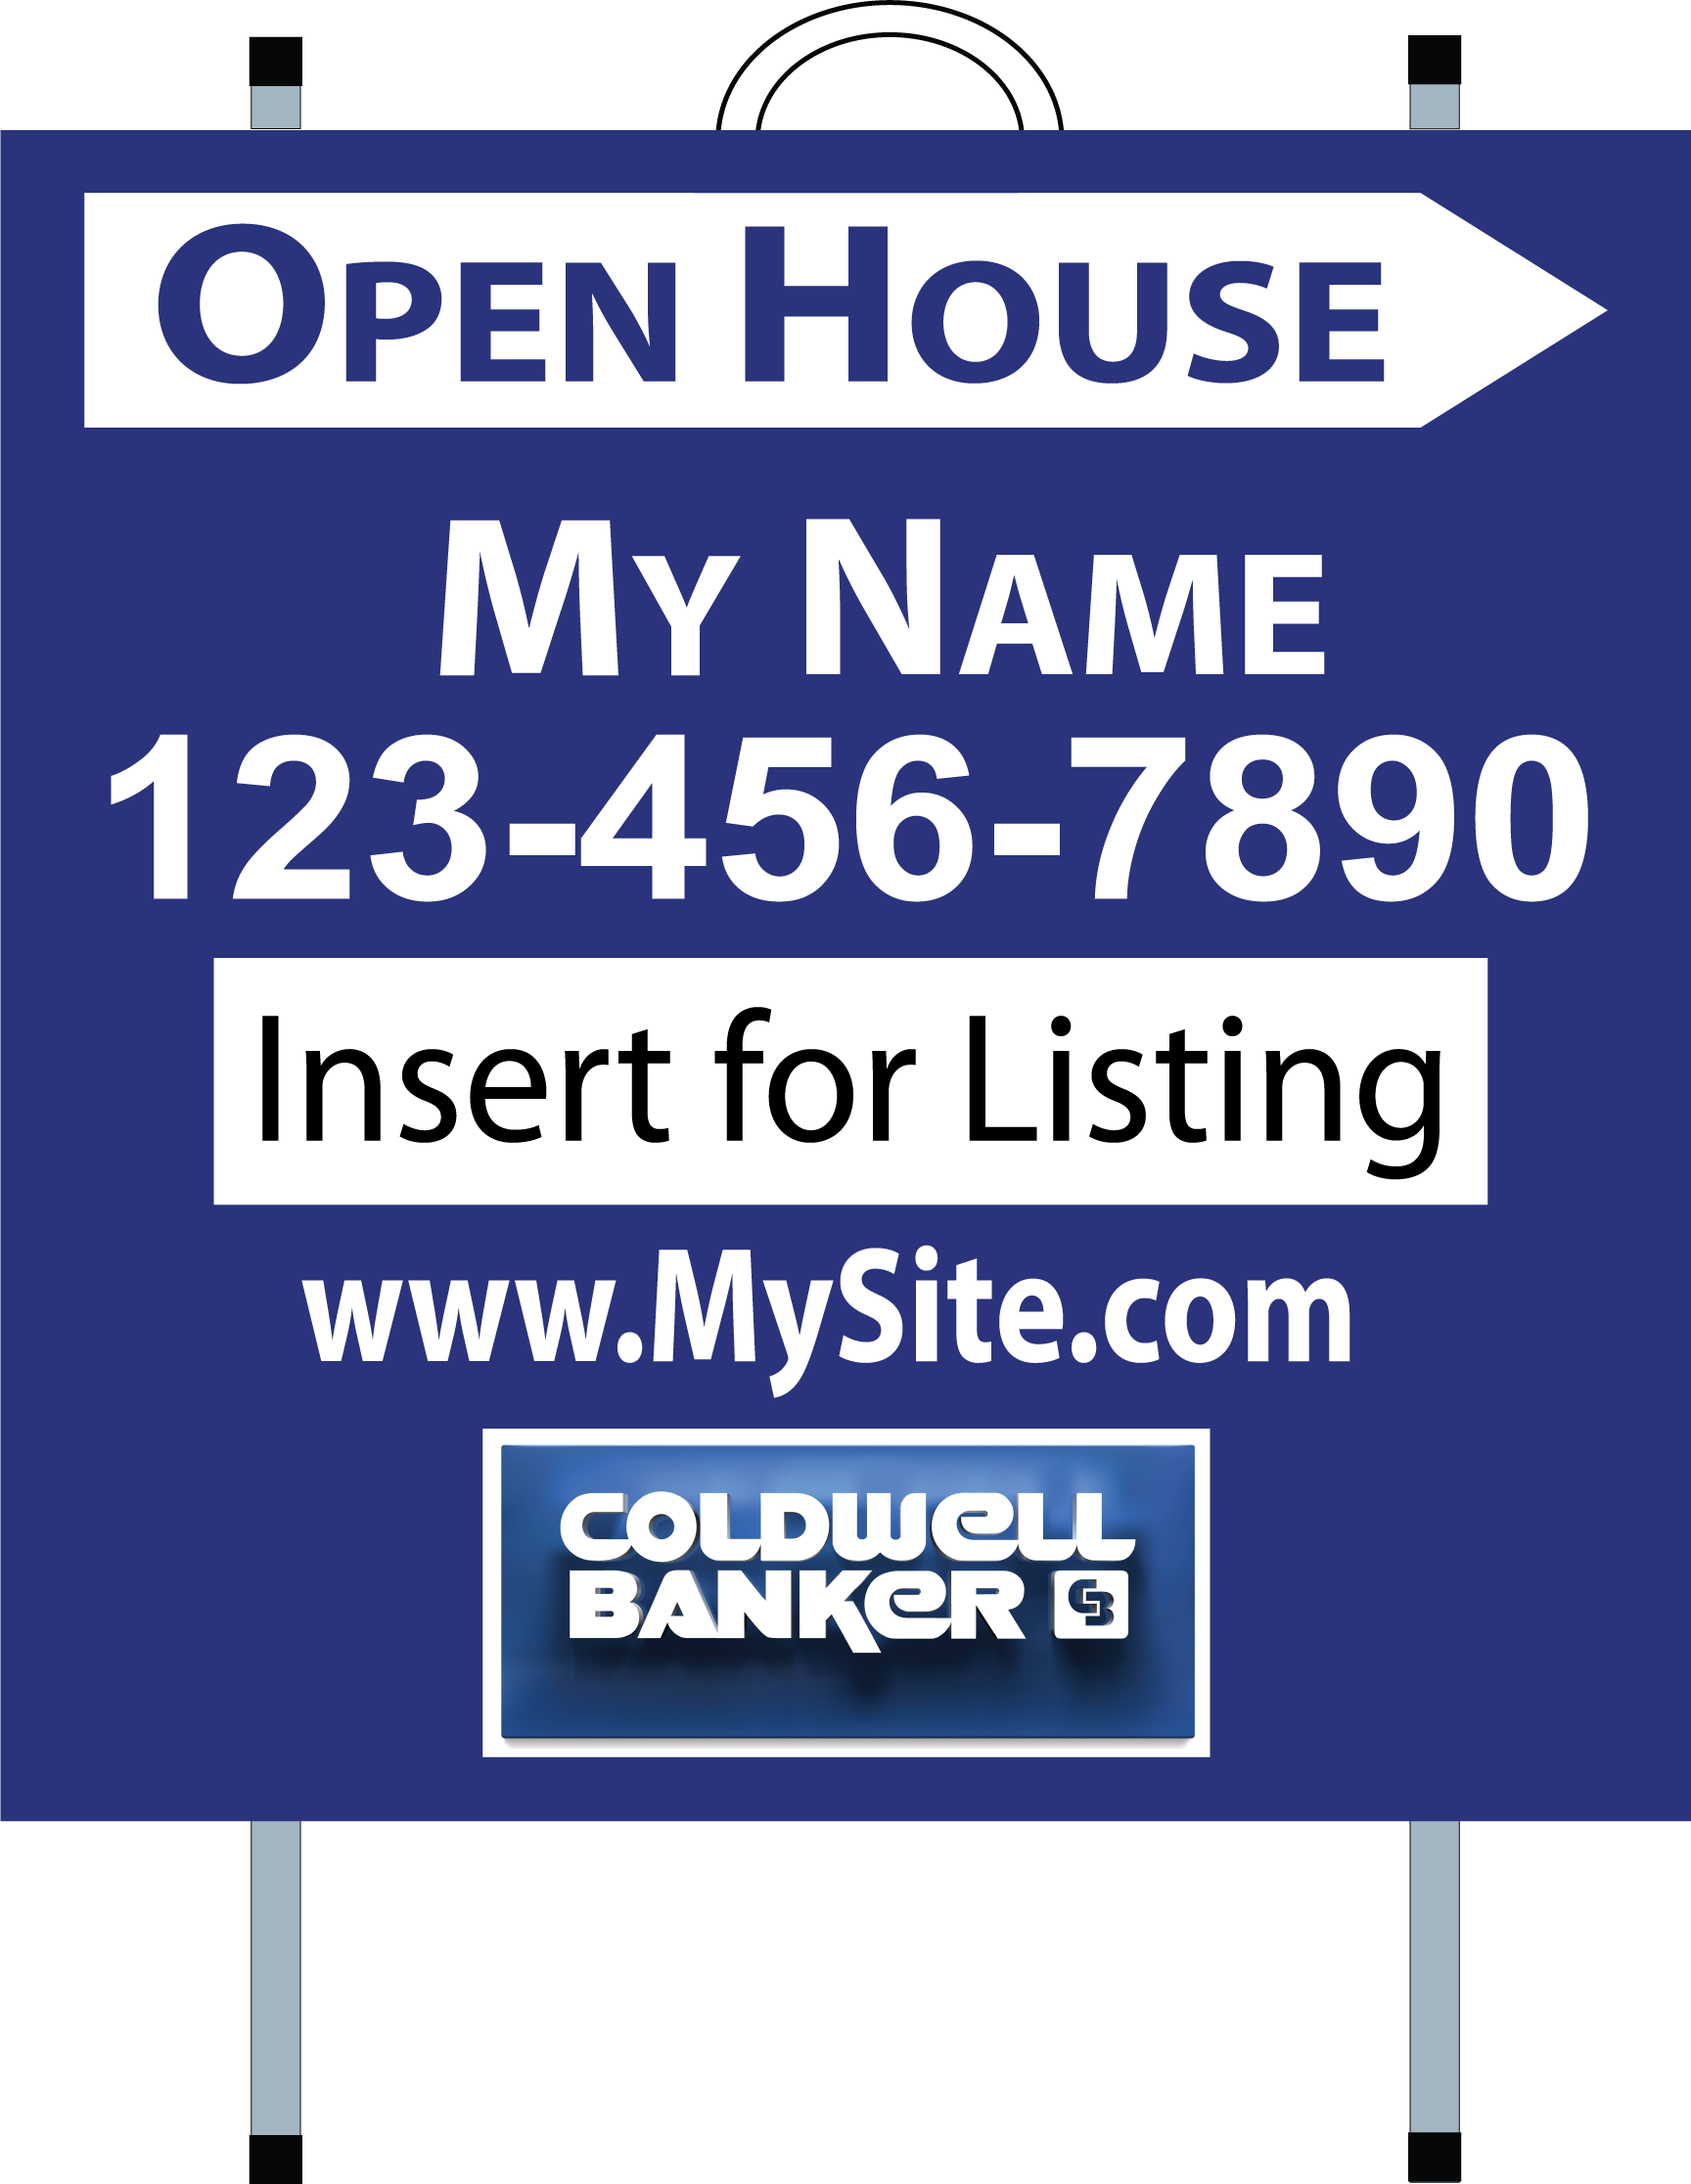 Coldwell Banker | Real Estate Signs, Yard Signs, Open House Signs